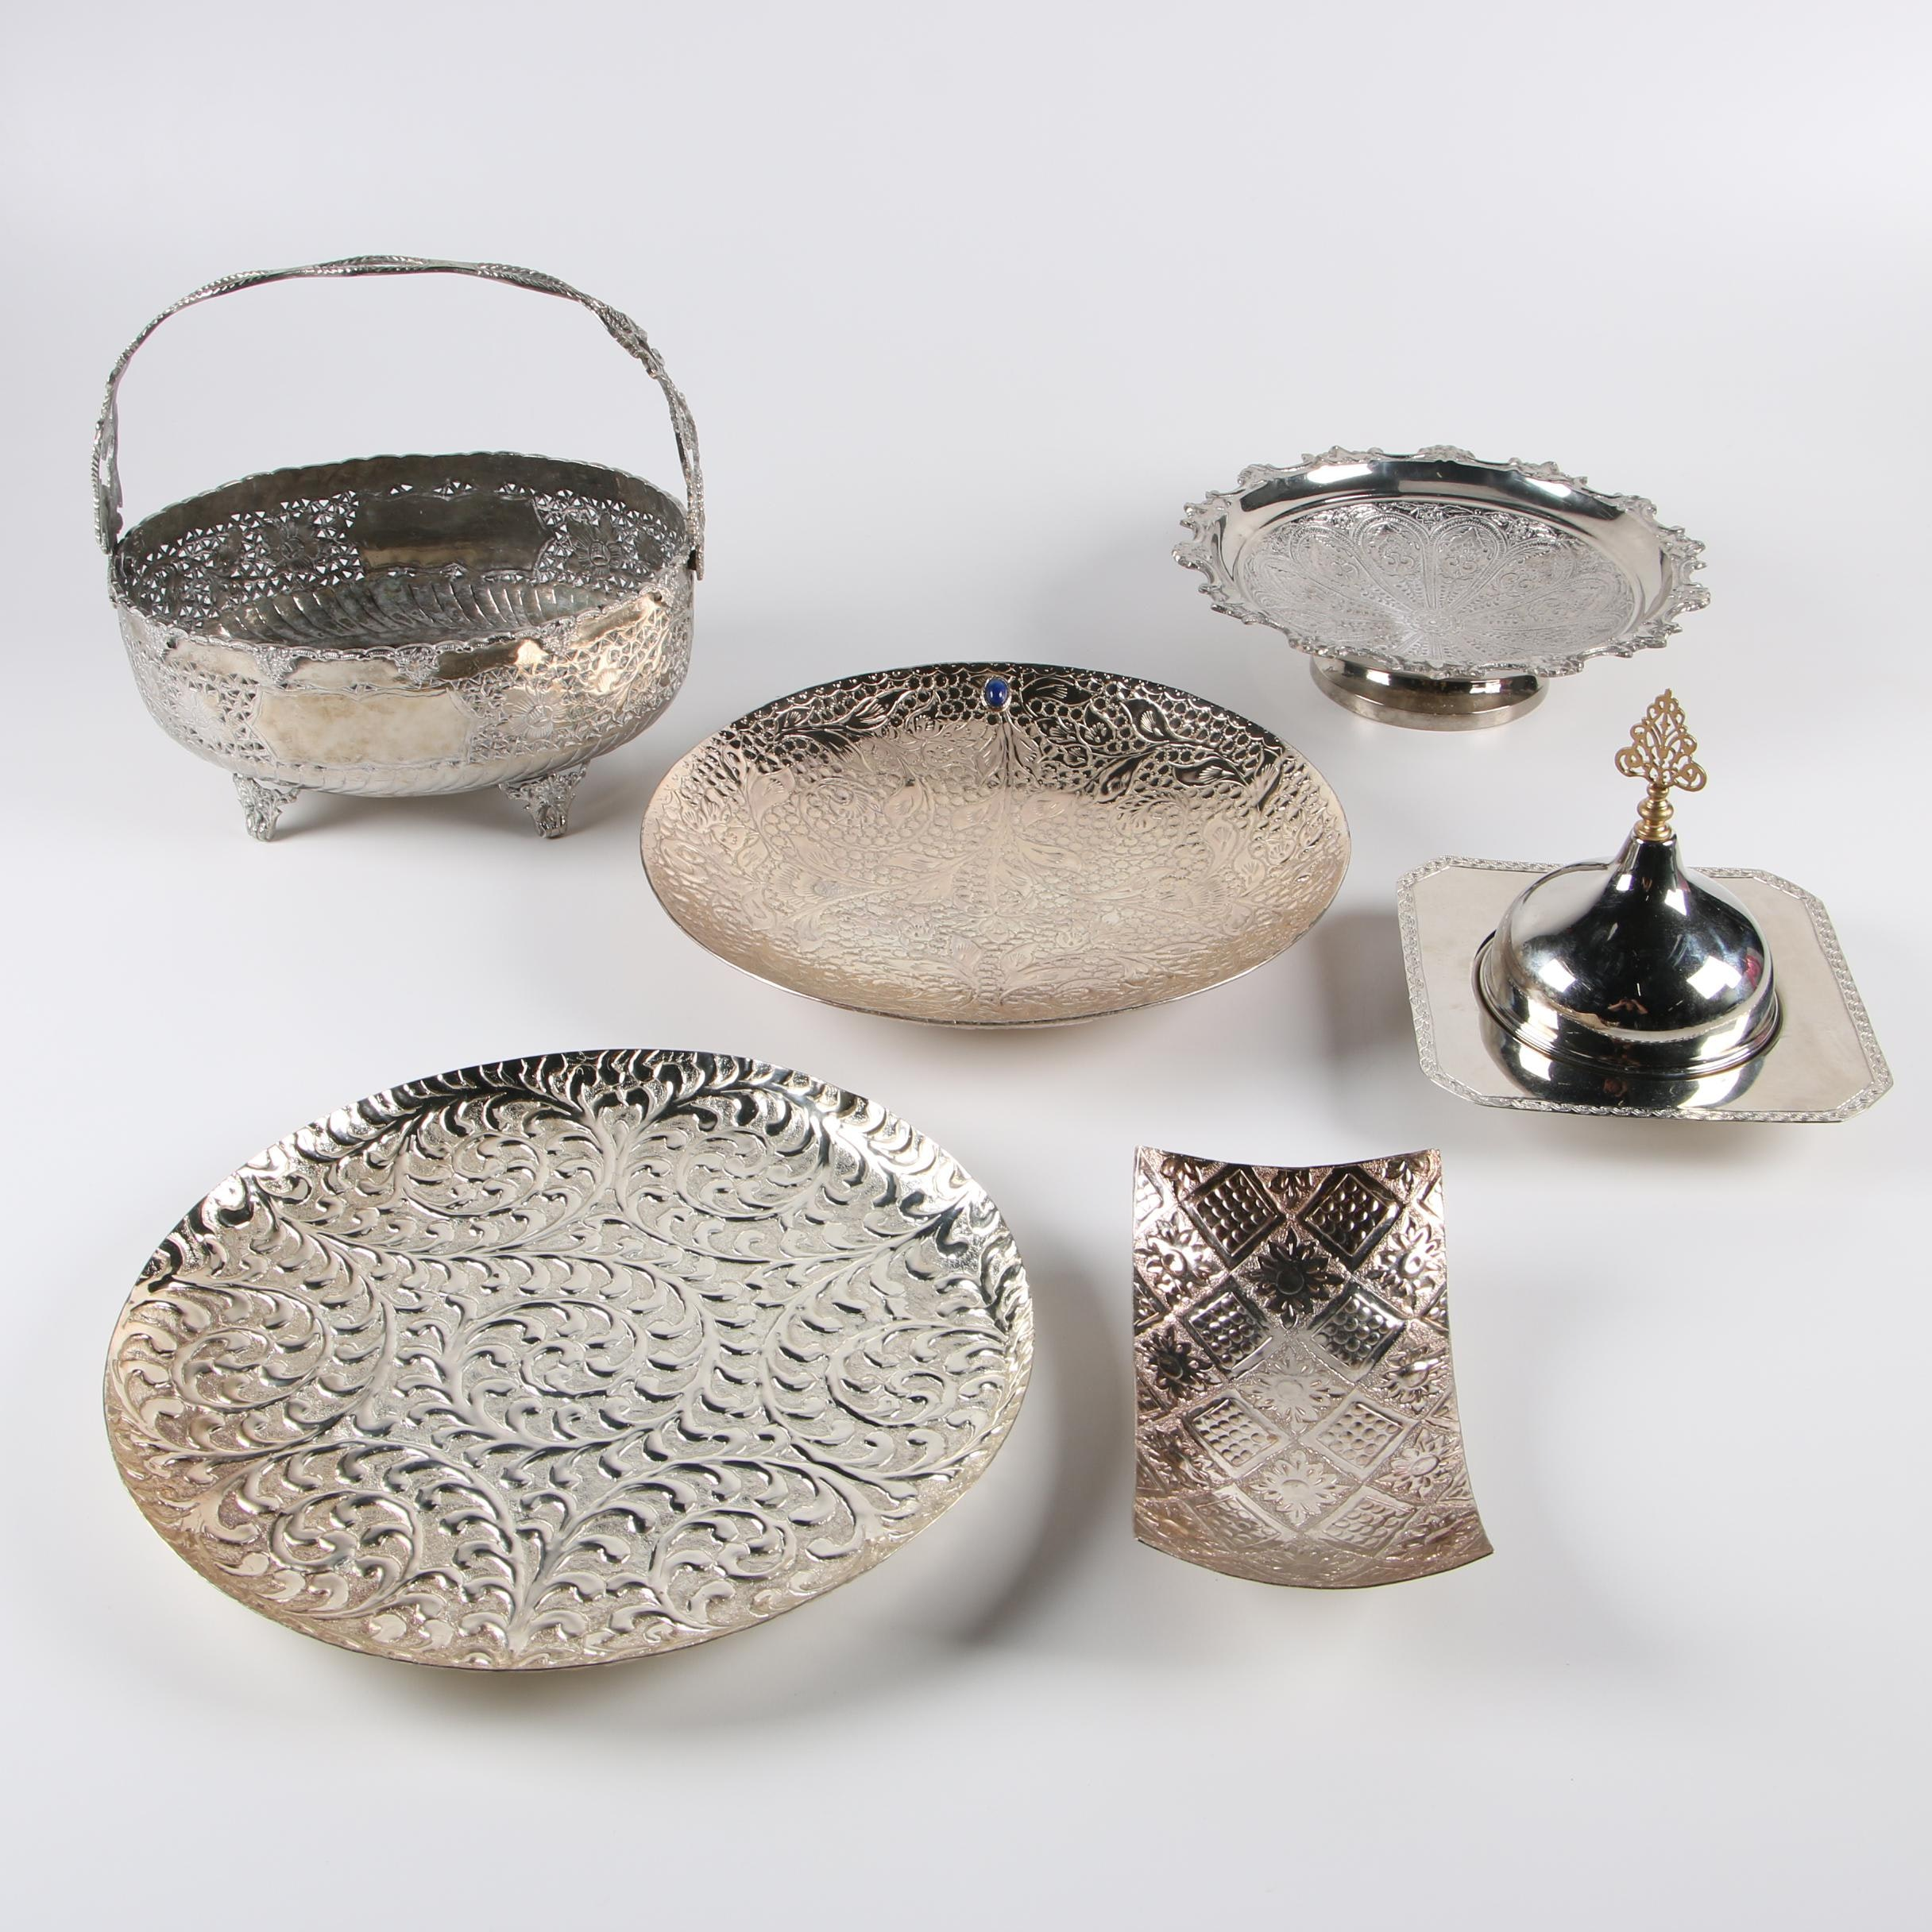 Taneez Silver Plate Trays with Other Middle Eastern Silver Plate Serveware